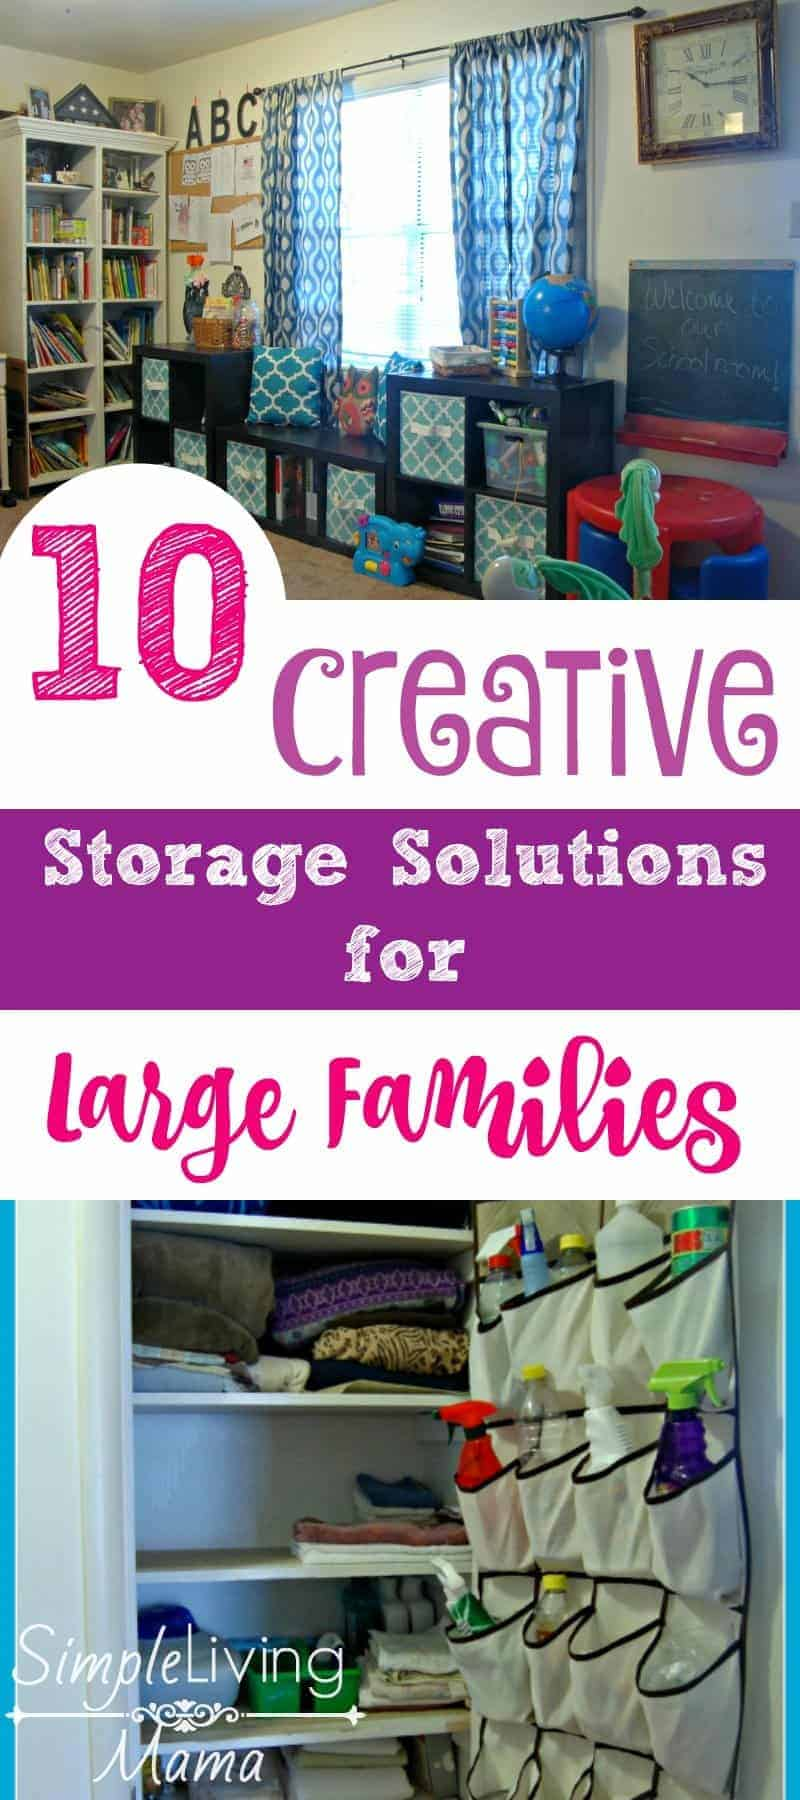 10 Creative Storage Solutions for Large Families